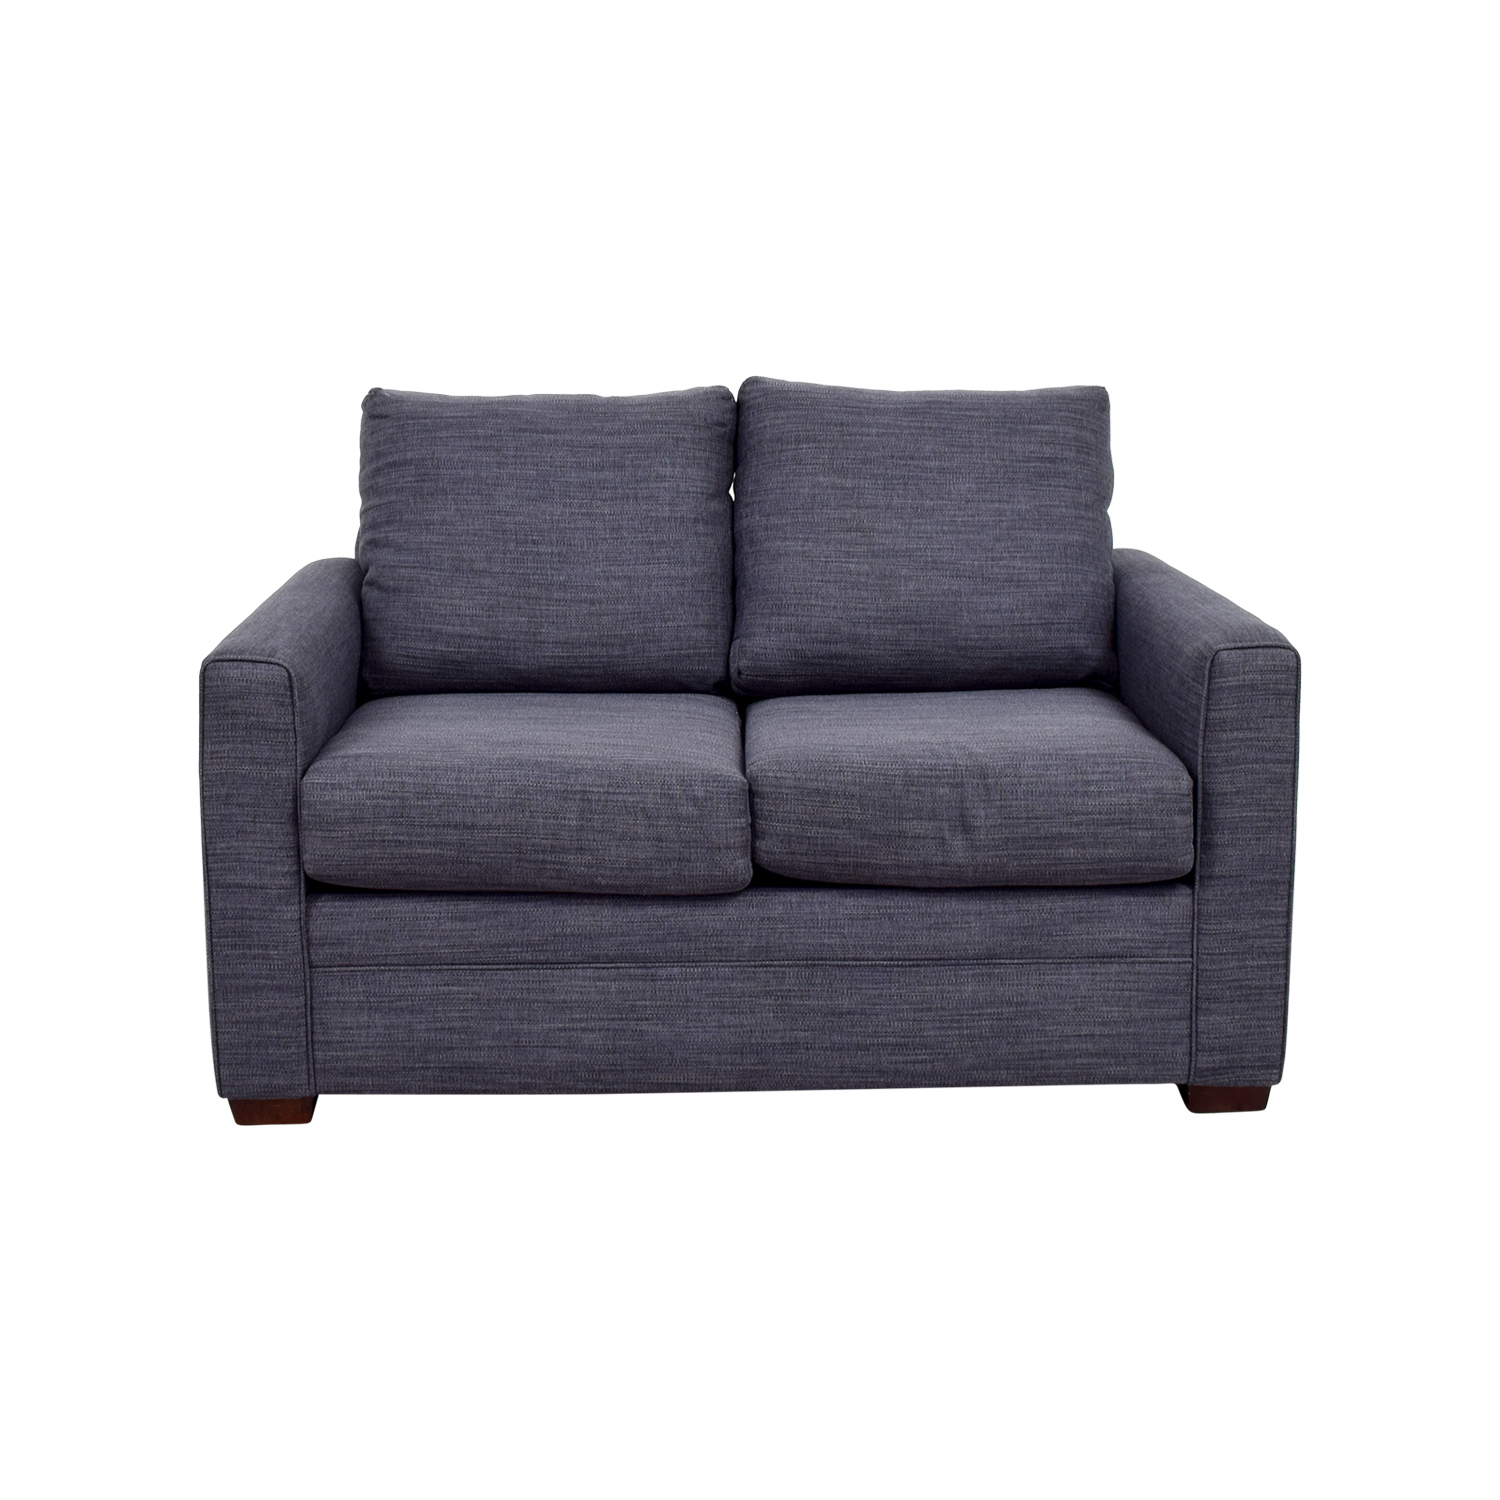 Bobs Furniture Bobs Furniture Navy Blue Love Seat price